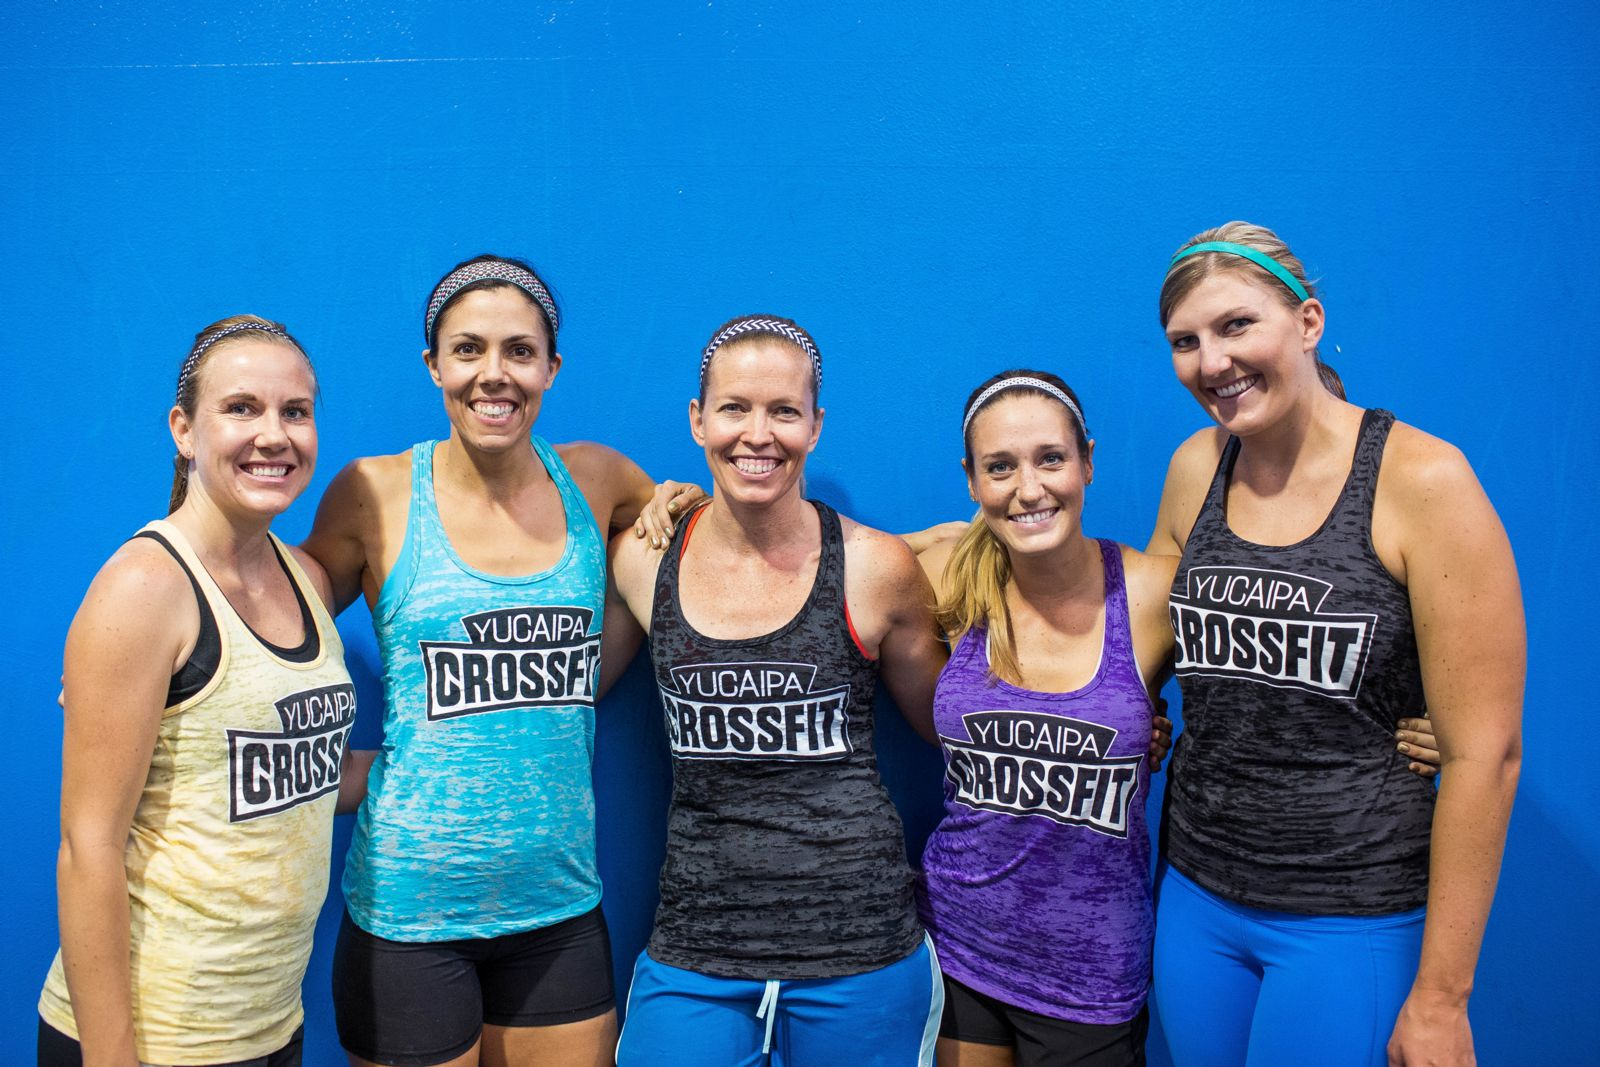 Yucaipa CrossFit is for you!